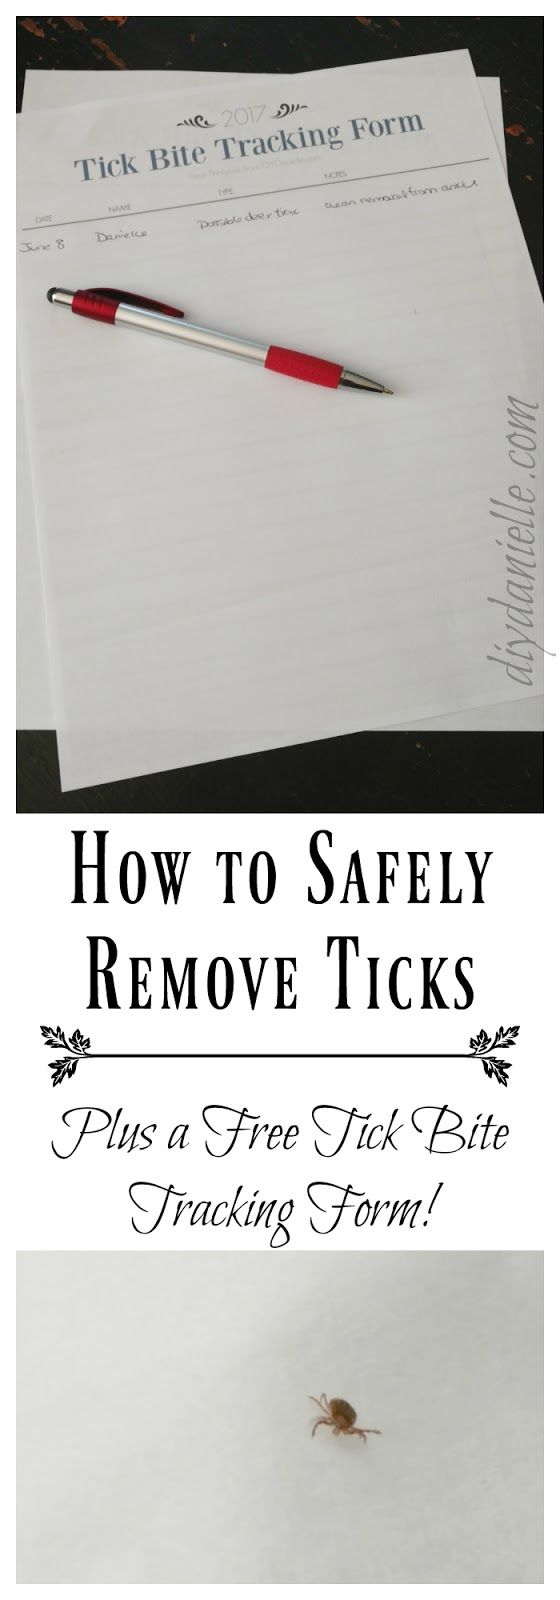 How to safely remove ticks, should ticks be tested, and how to prevent tick bites. Get a tick bite tracking printable!